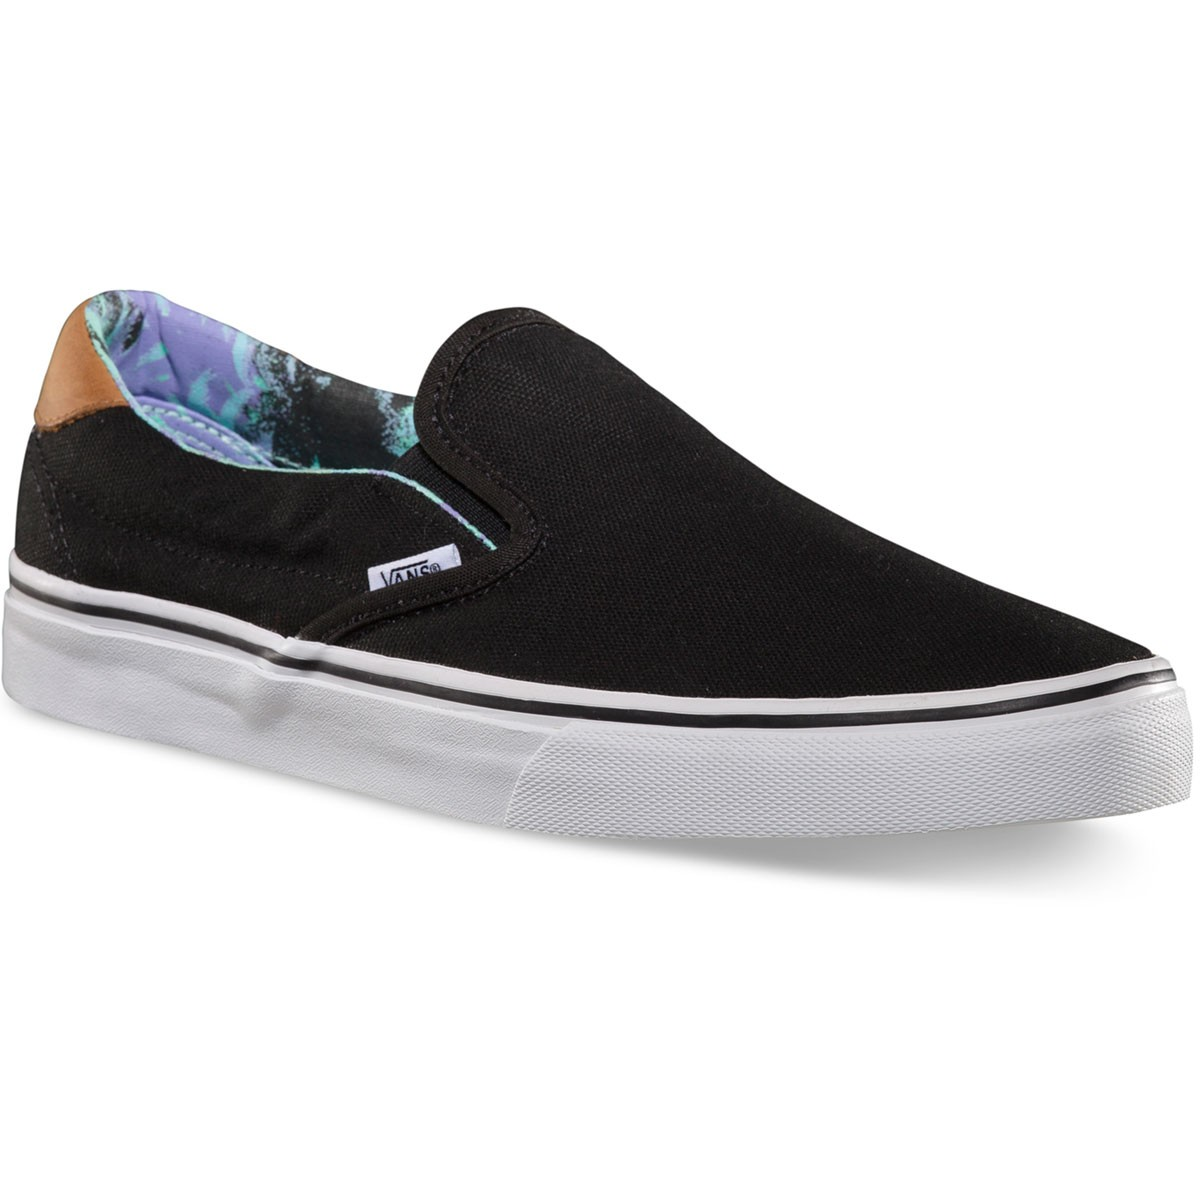 Vans C & F Slip-On 59 Shoes - Black/Beach Glass - 7.0